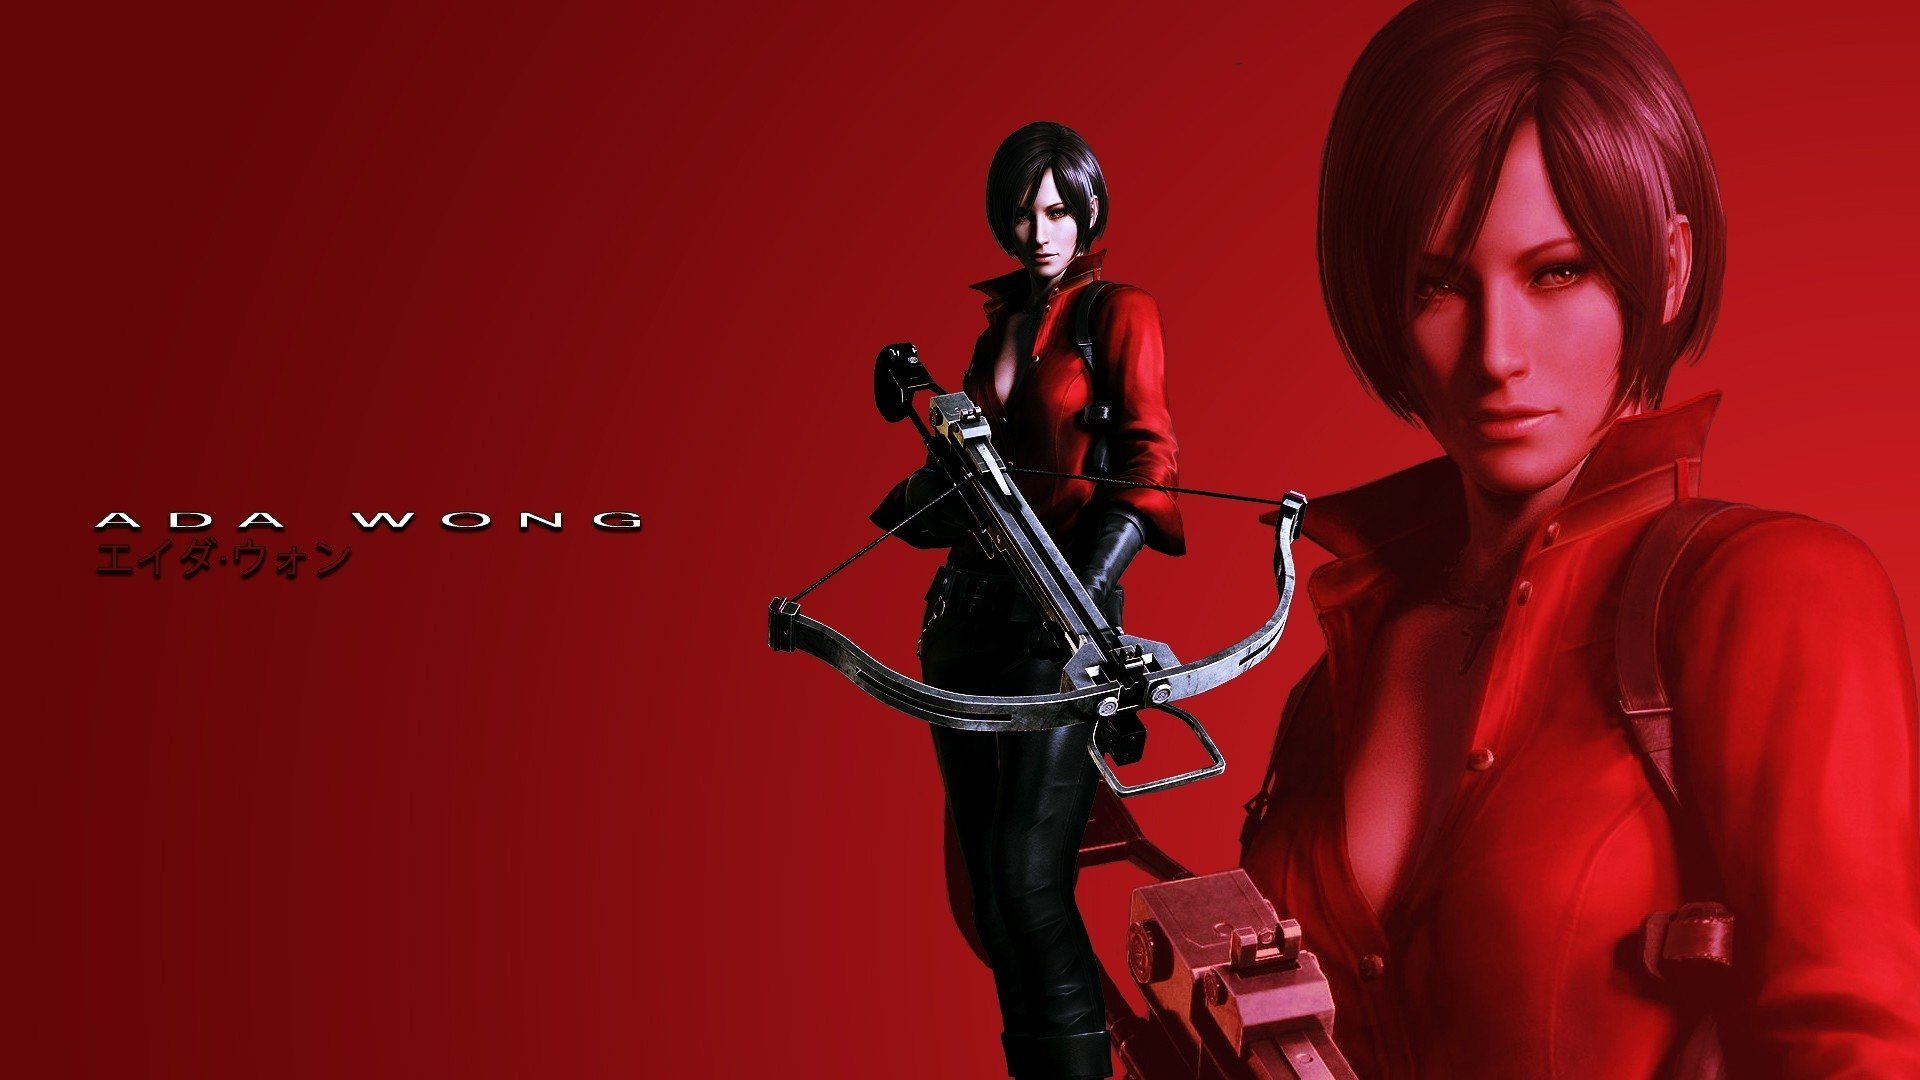 233 Resident Evil 6 Hd Wallpapers Backgrounds Wallpaper Abyss